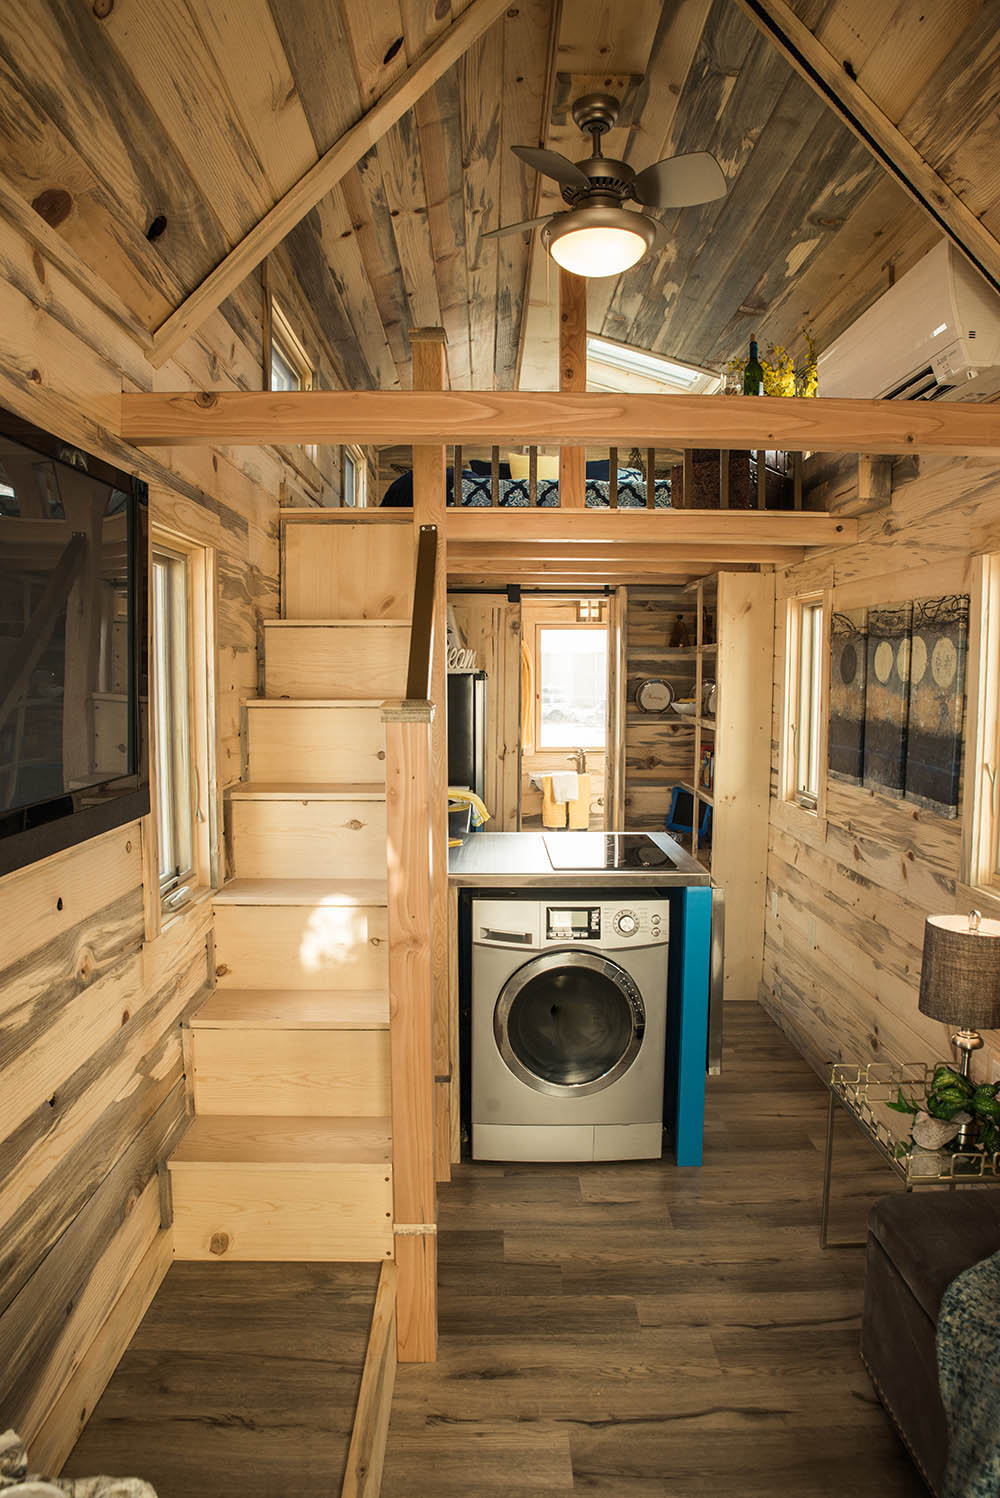 katrina reinvented her life with a tumbleweed tiny house - Tumbleweed Tiny House Interior